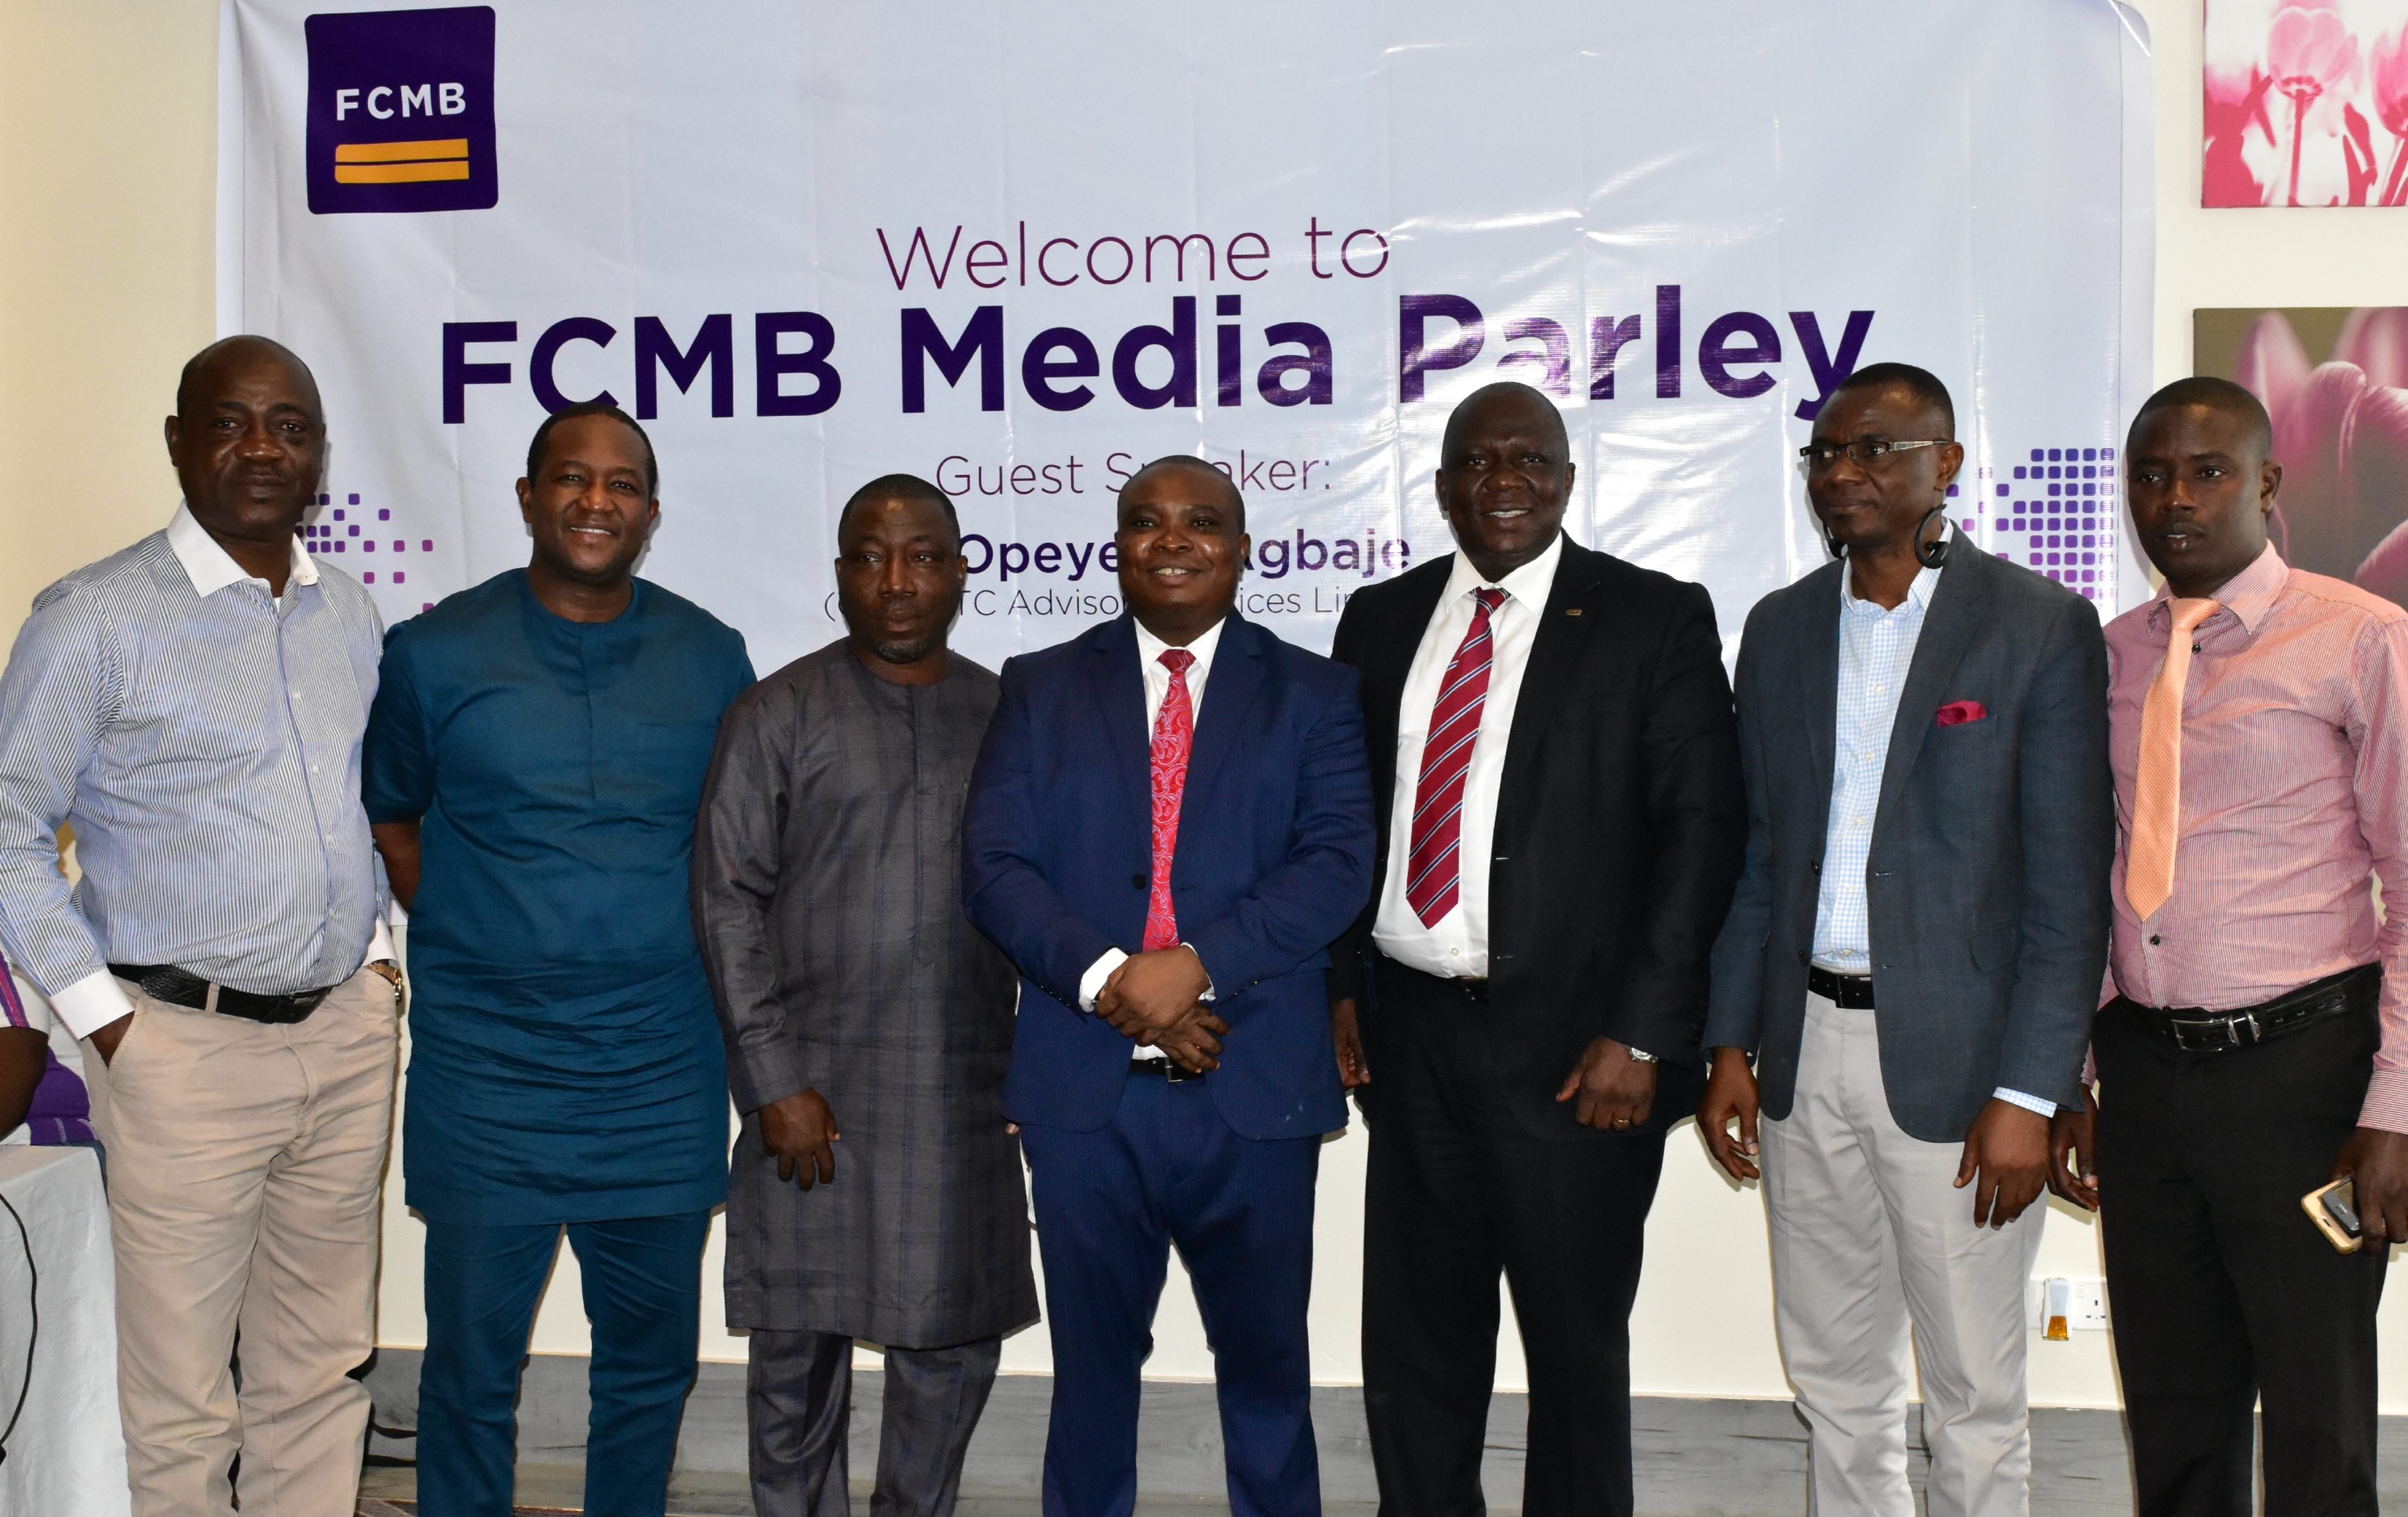 From left: Bureau Chief, South-west, Guardian Newspaper, Mr. Muyiwa Adeyemi; Group Head, Corporate Affairs, First City Monument Bank (FCMB), Mr. Diran Olojo; Bureau Chief, Ibadan, AIT, Mr. Femi Amusan; Guest Speaker, Dr. Vincent Nwani; Regional Head, South-west, FCMB, Mr. Adelaja Adeleye; Bureau Chief, South-west, The Nation Newspaper, Mr. Bisi Oladele and South-west Zonal Secretary, Nigeria Union of Journalists, Mr. Bamigbola Gbolagunte, during a Media Parley and capacity building programme by the Bank for Journalists on August 29, 2019 in Ibadan, Oyo State.